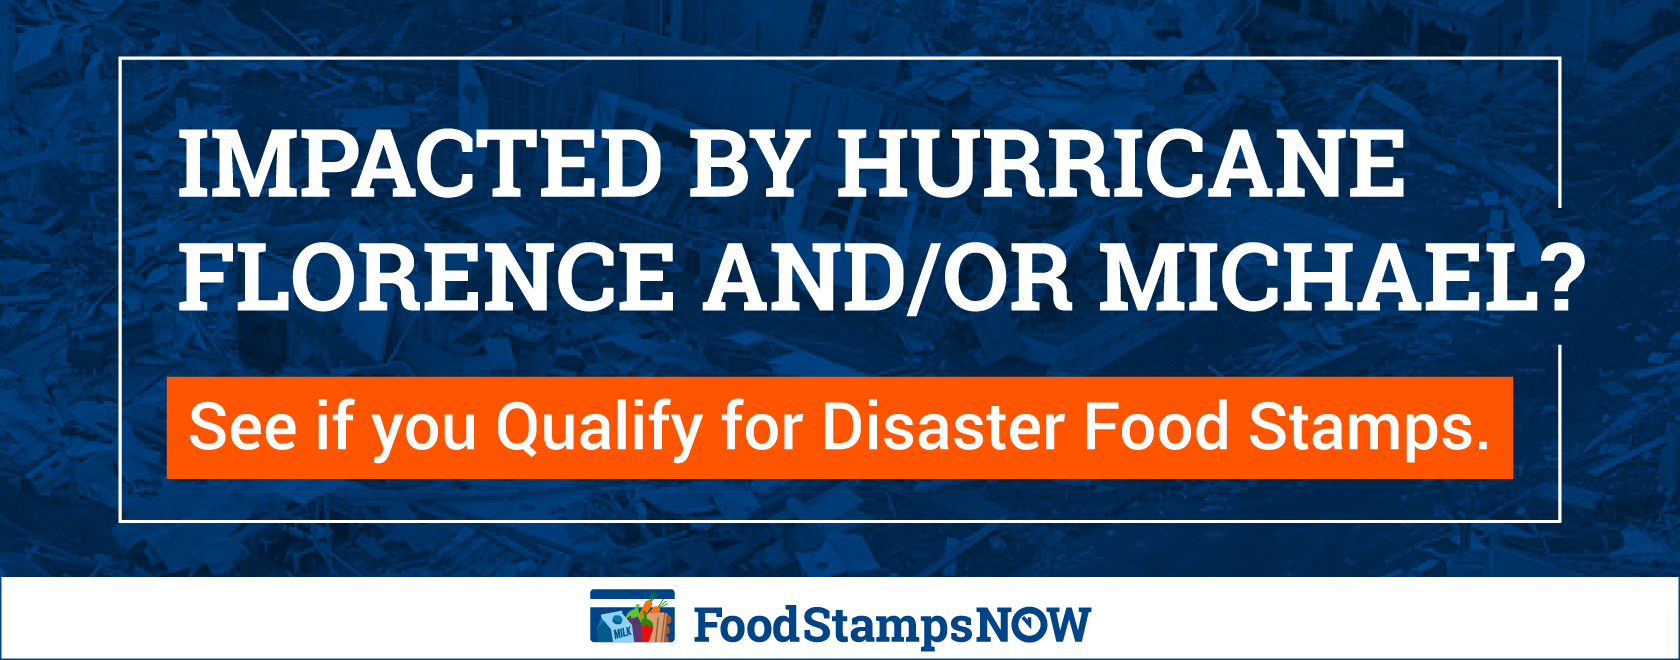 Apply For Hurricane Michael Disaster Food Stamps Food Stamps Now